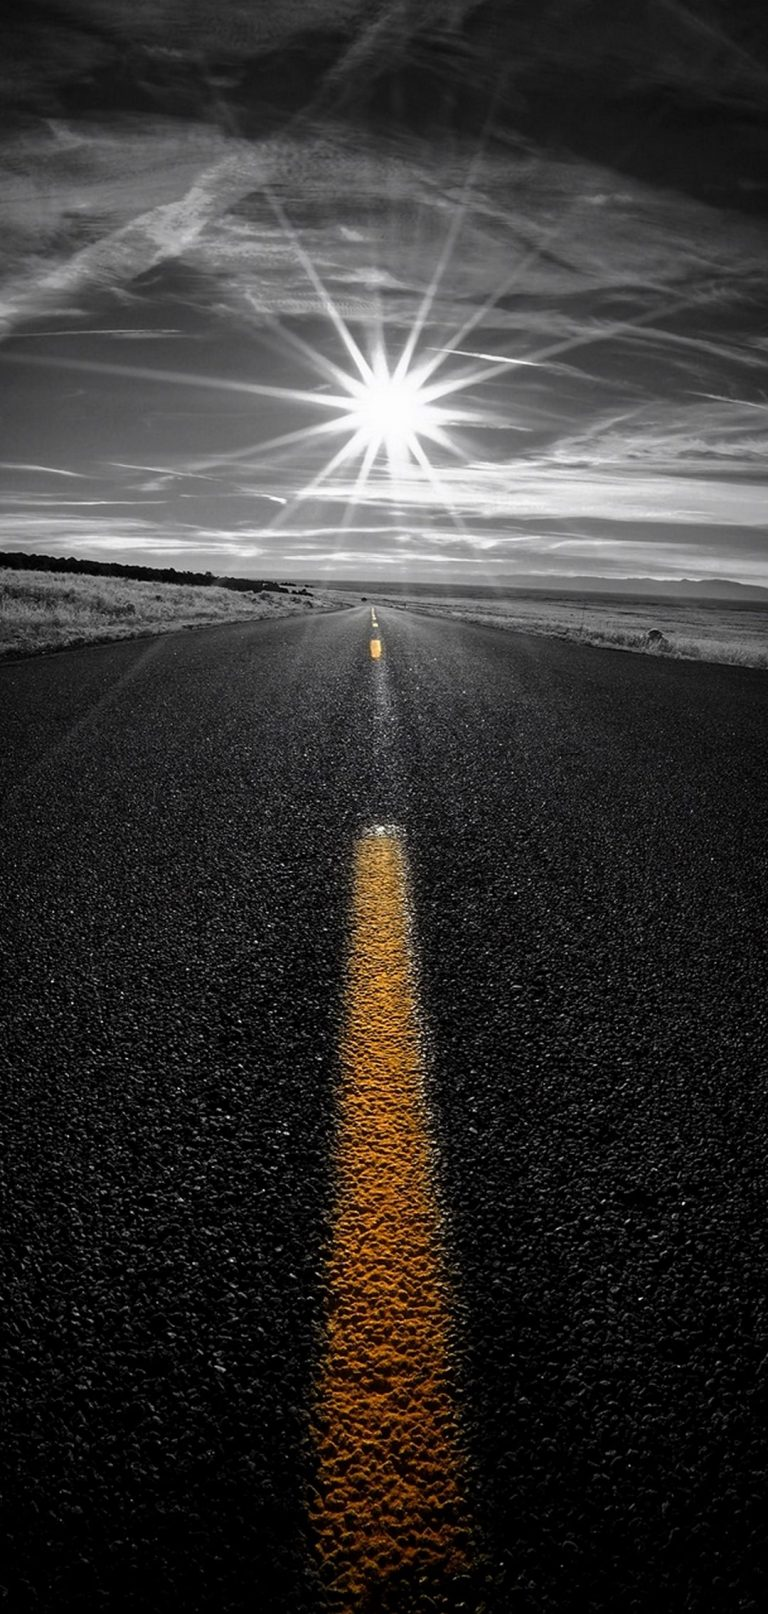 Road Marking Sunlight 1080x2270 768x1614